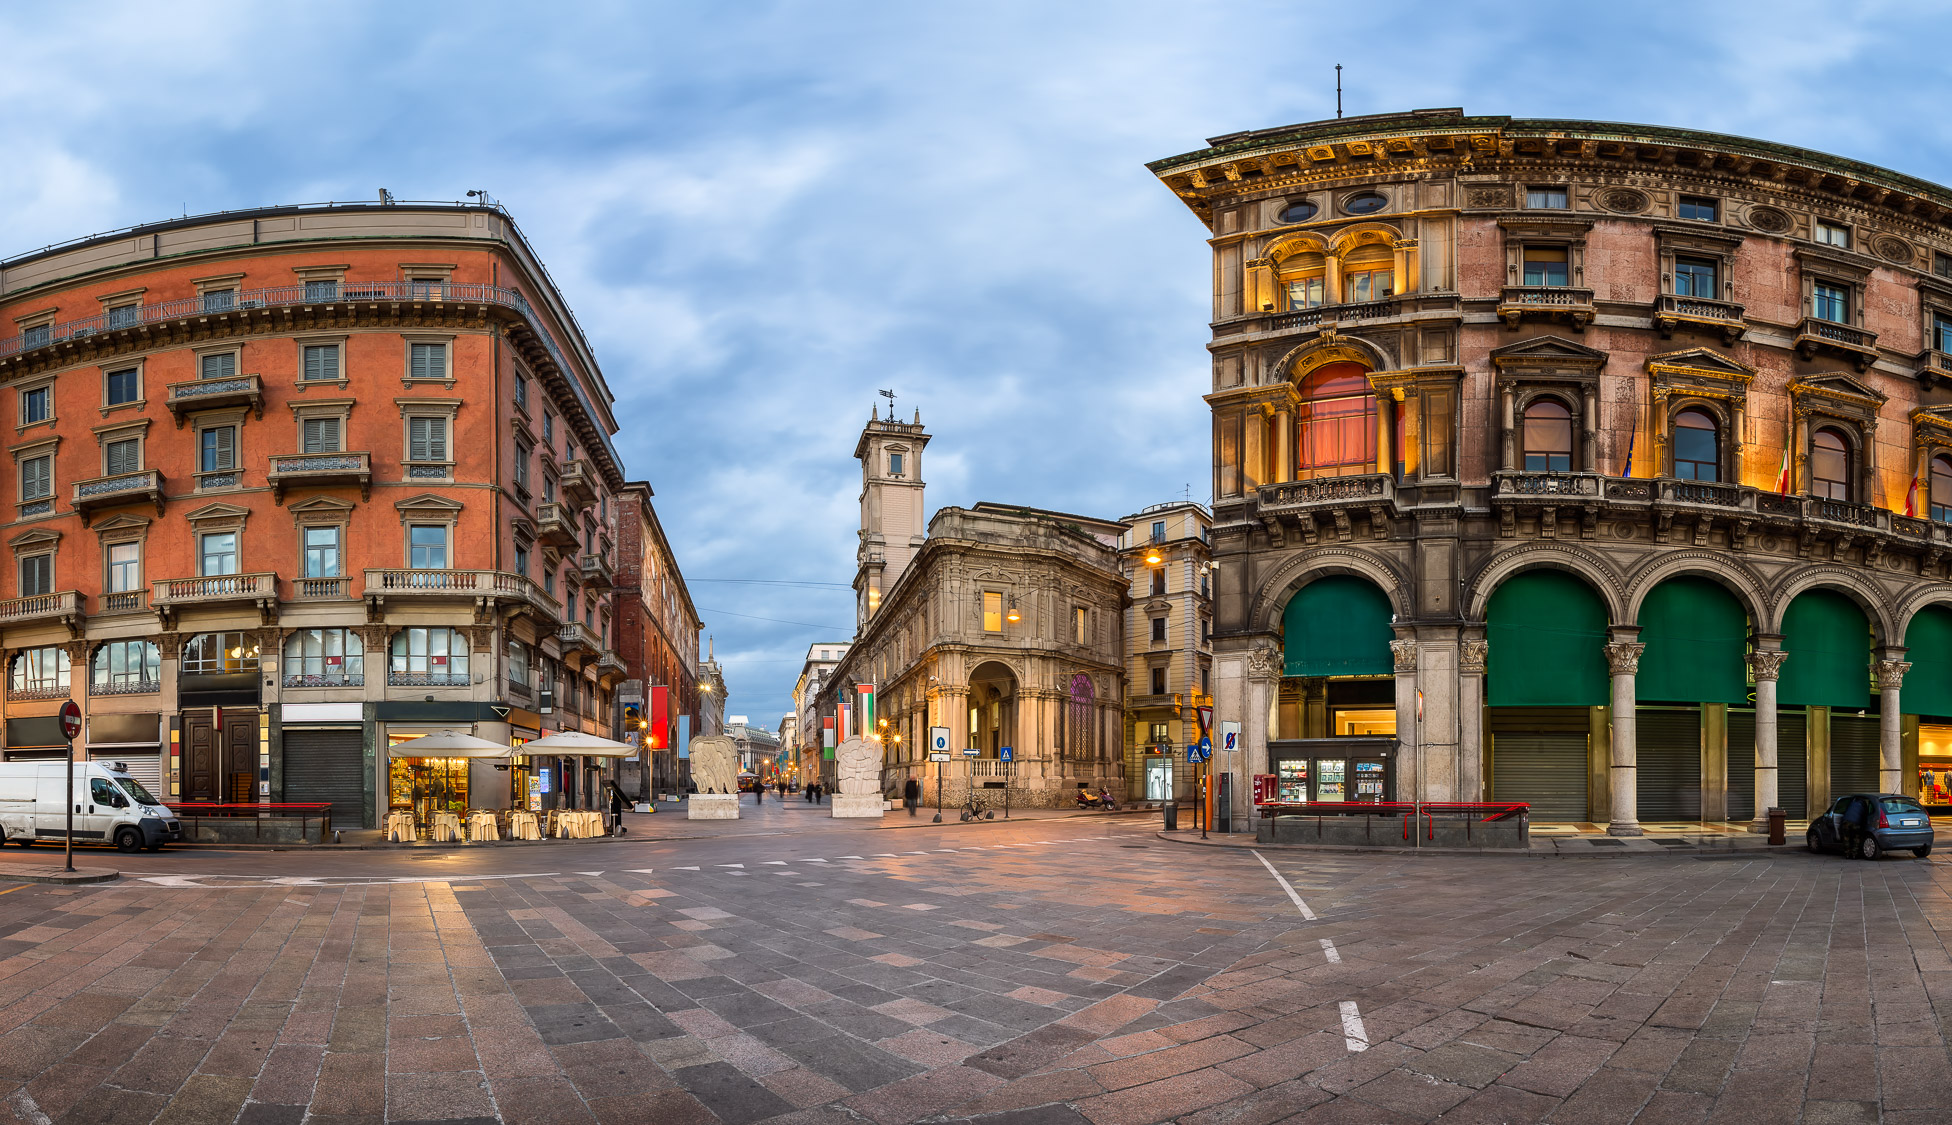 Piazza del Duomo and Via dei Mercanti in the Morning, Milan, Italy